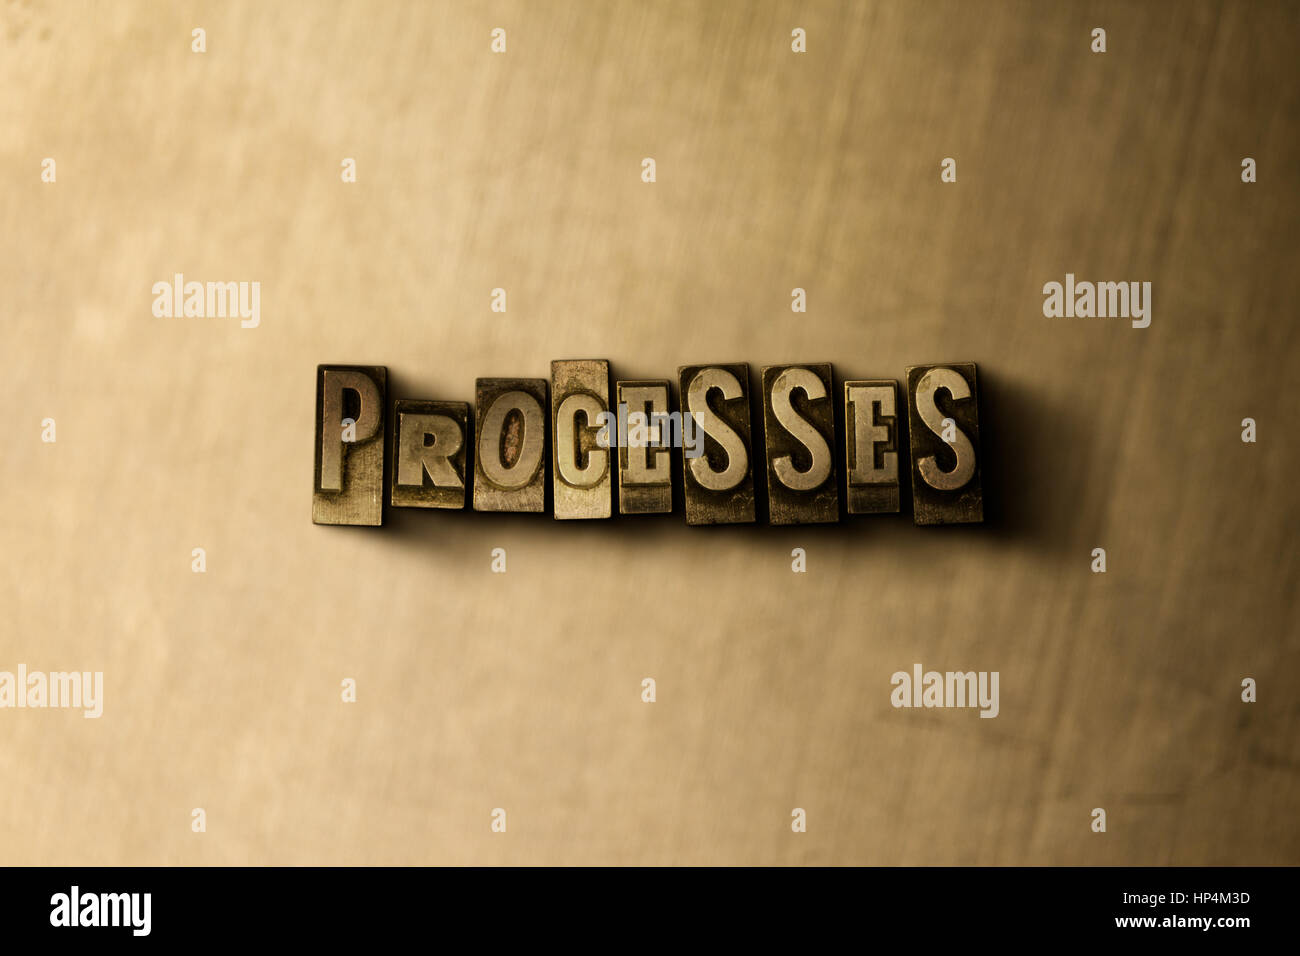 PROCESSES - close-up of grungy vintage typeset word on metal backdrop. Royalty free stock illustration.  Can be - Stock Image